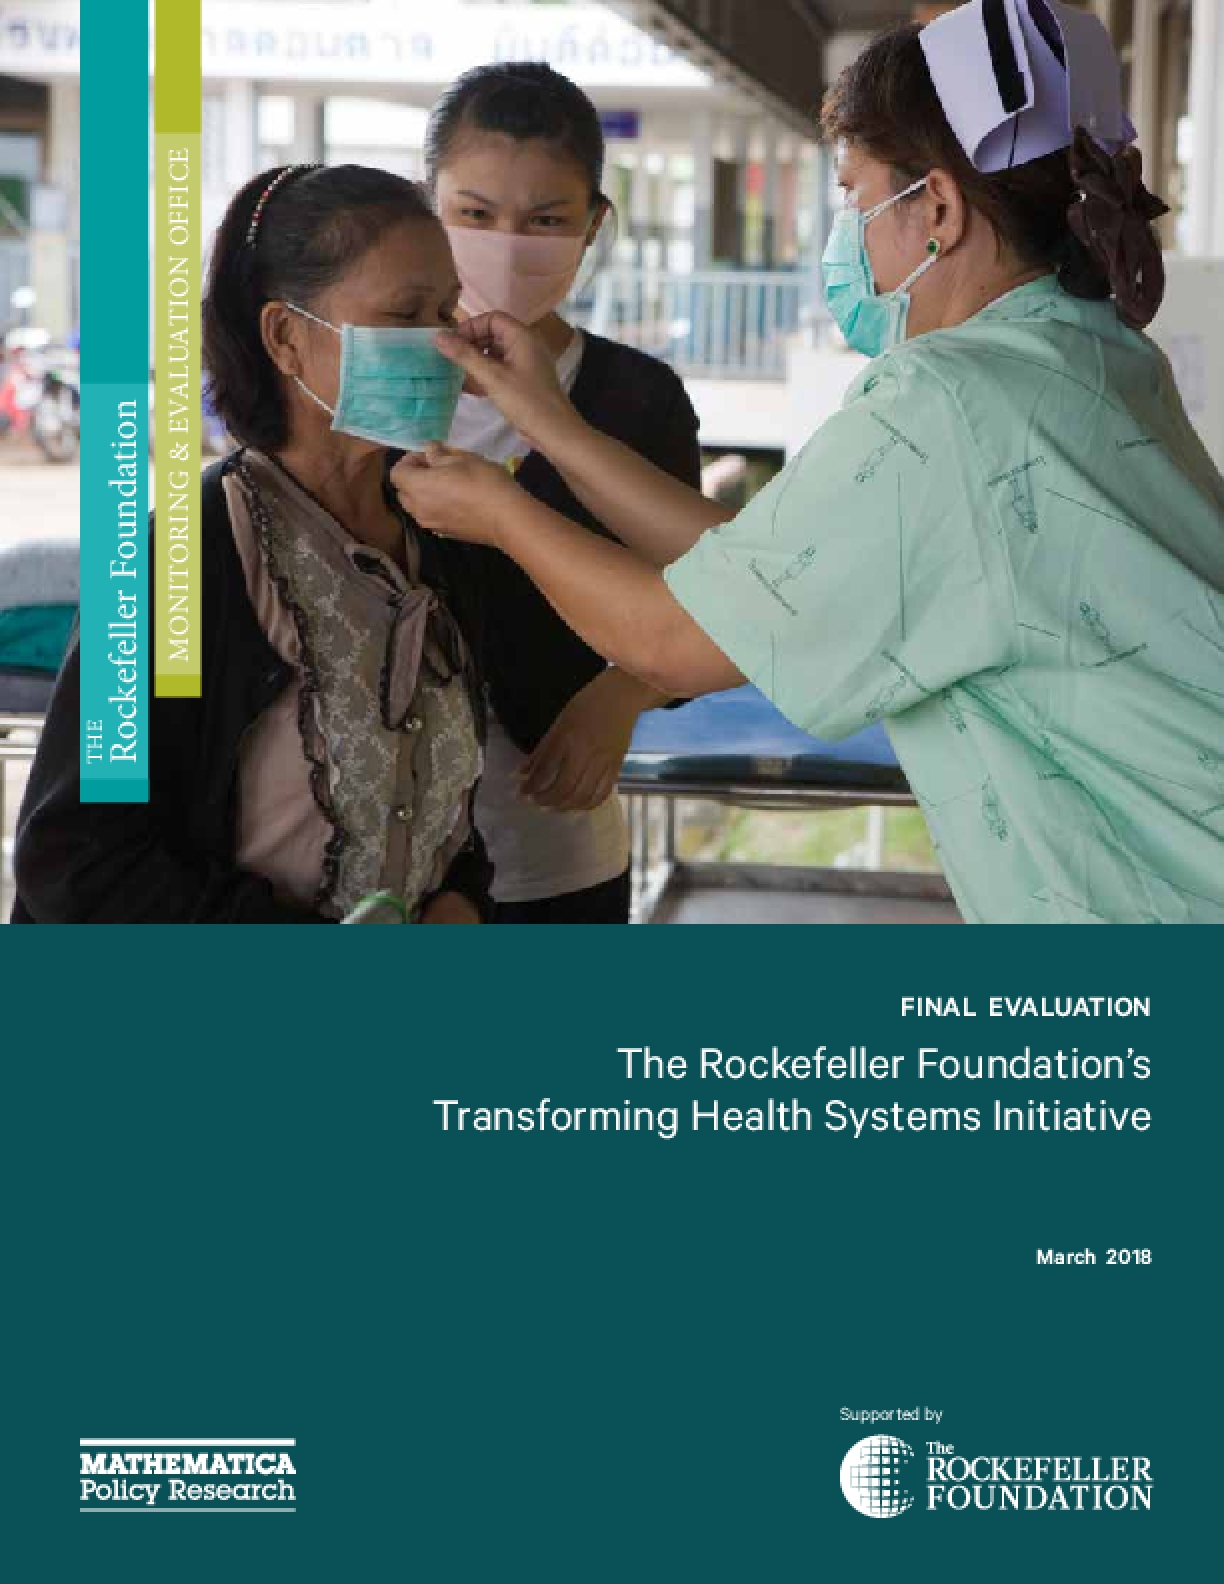 The Rockefeller Foundation's Transforming Health Systems Initiative: Final Evaluation